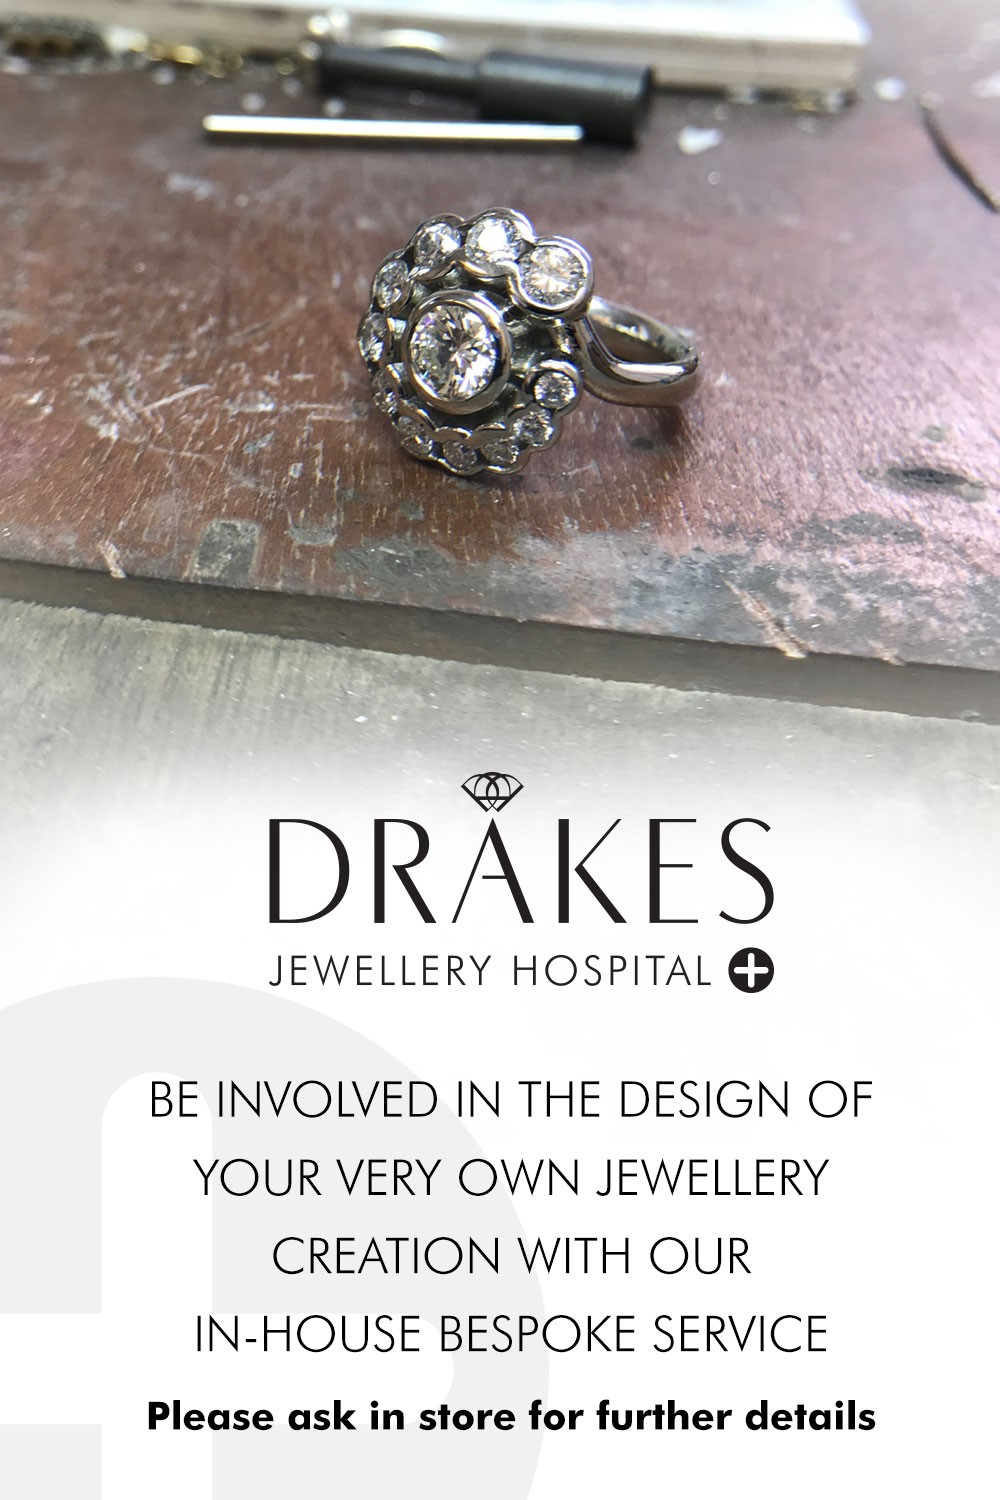 Bespoke Jewellery, Drakes Jewellers, Plymouth, Drakes Jewellery Hospital